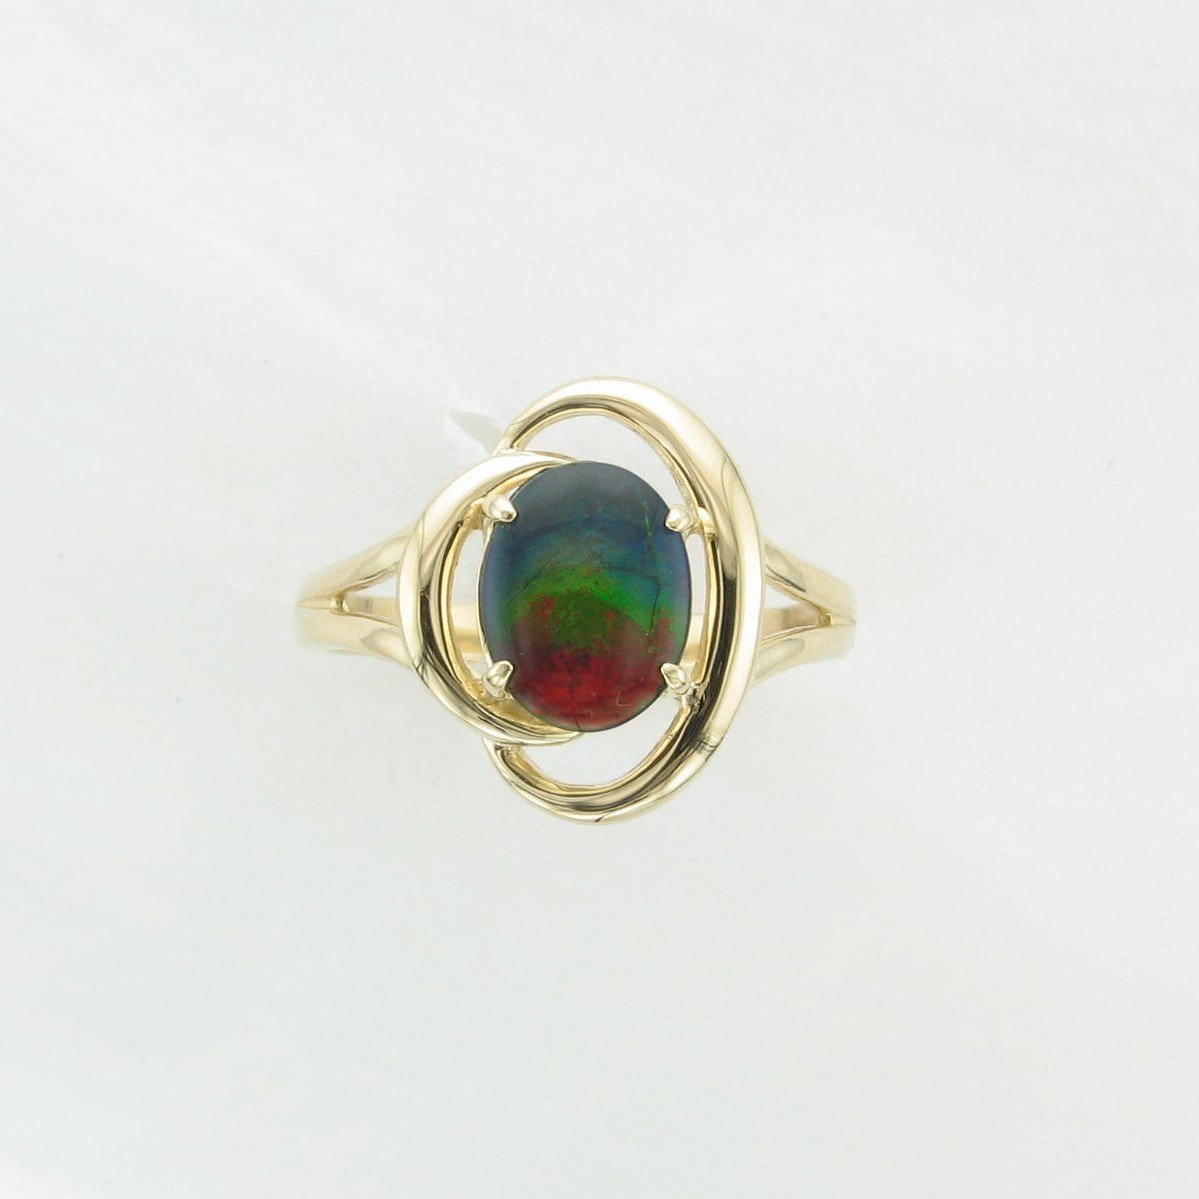 Oval Amoliite Ring set in 14k Yellow Gold